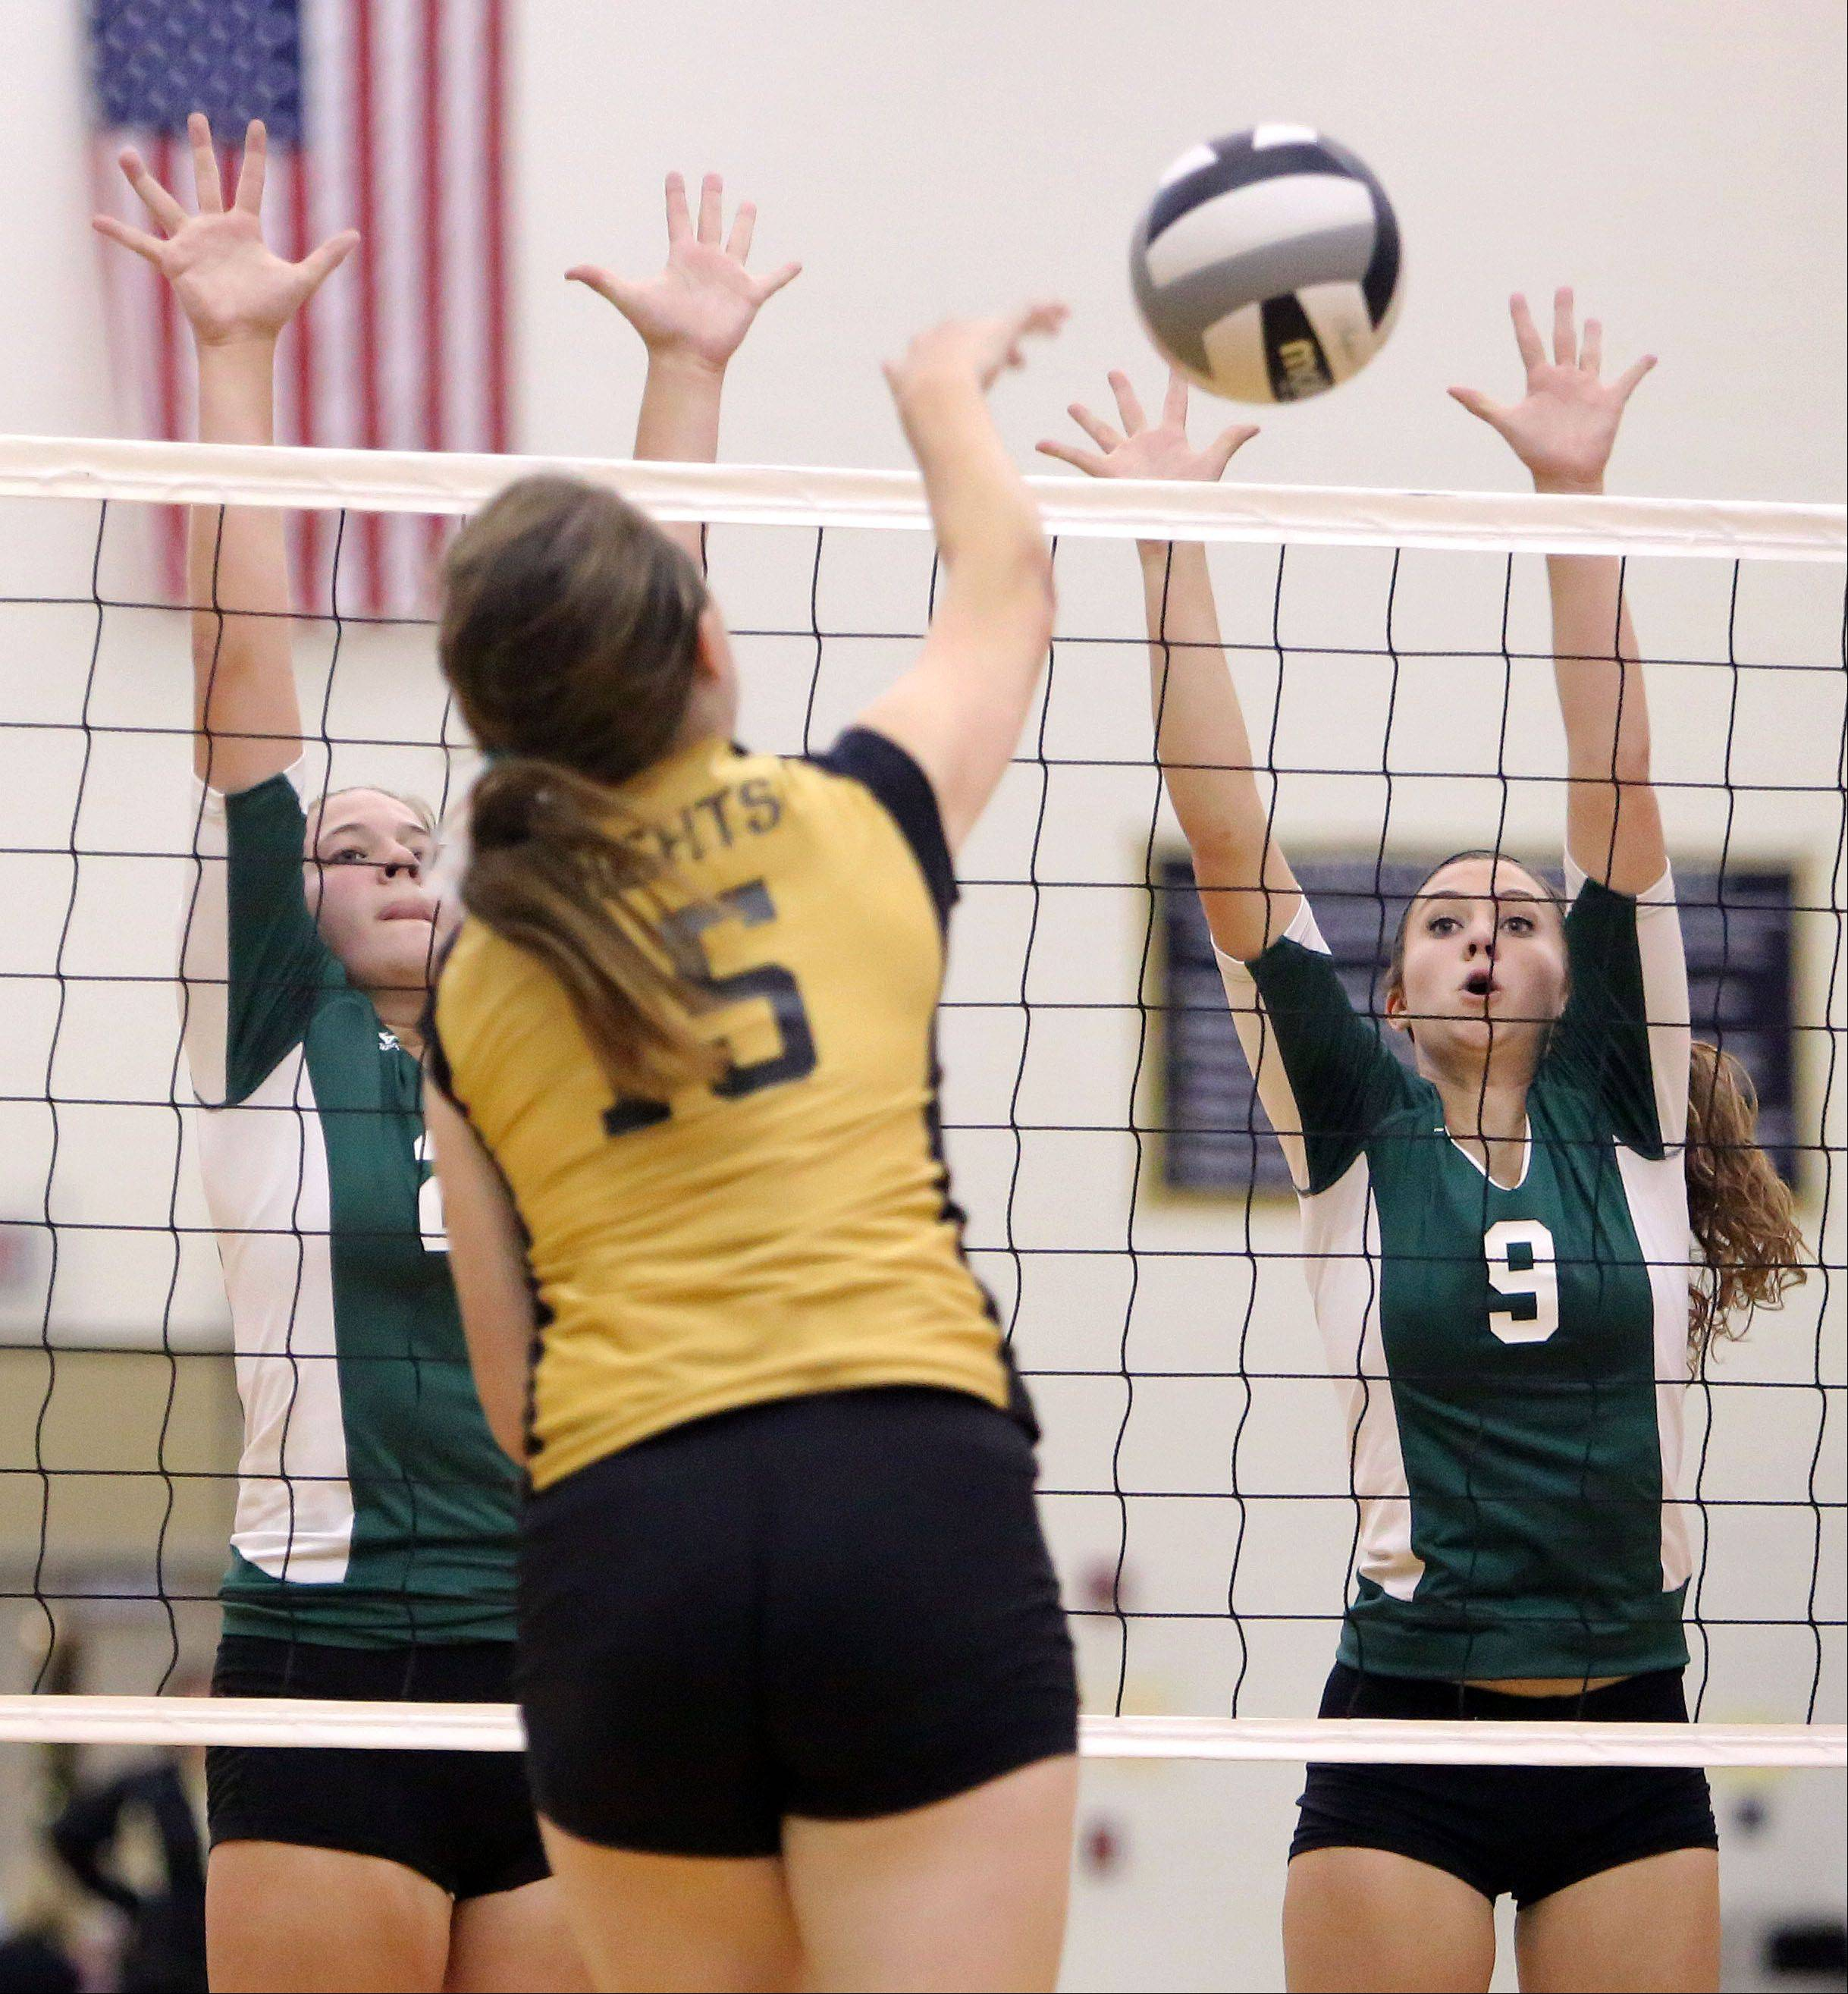 Grayslake North's Nicole LeBaron spikes one at Grayslake Central's Emily Donelly, left, and Anna Basten on Tuesday at Grayslake North.